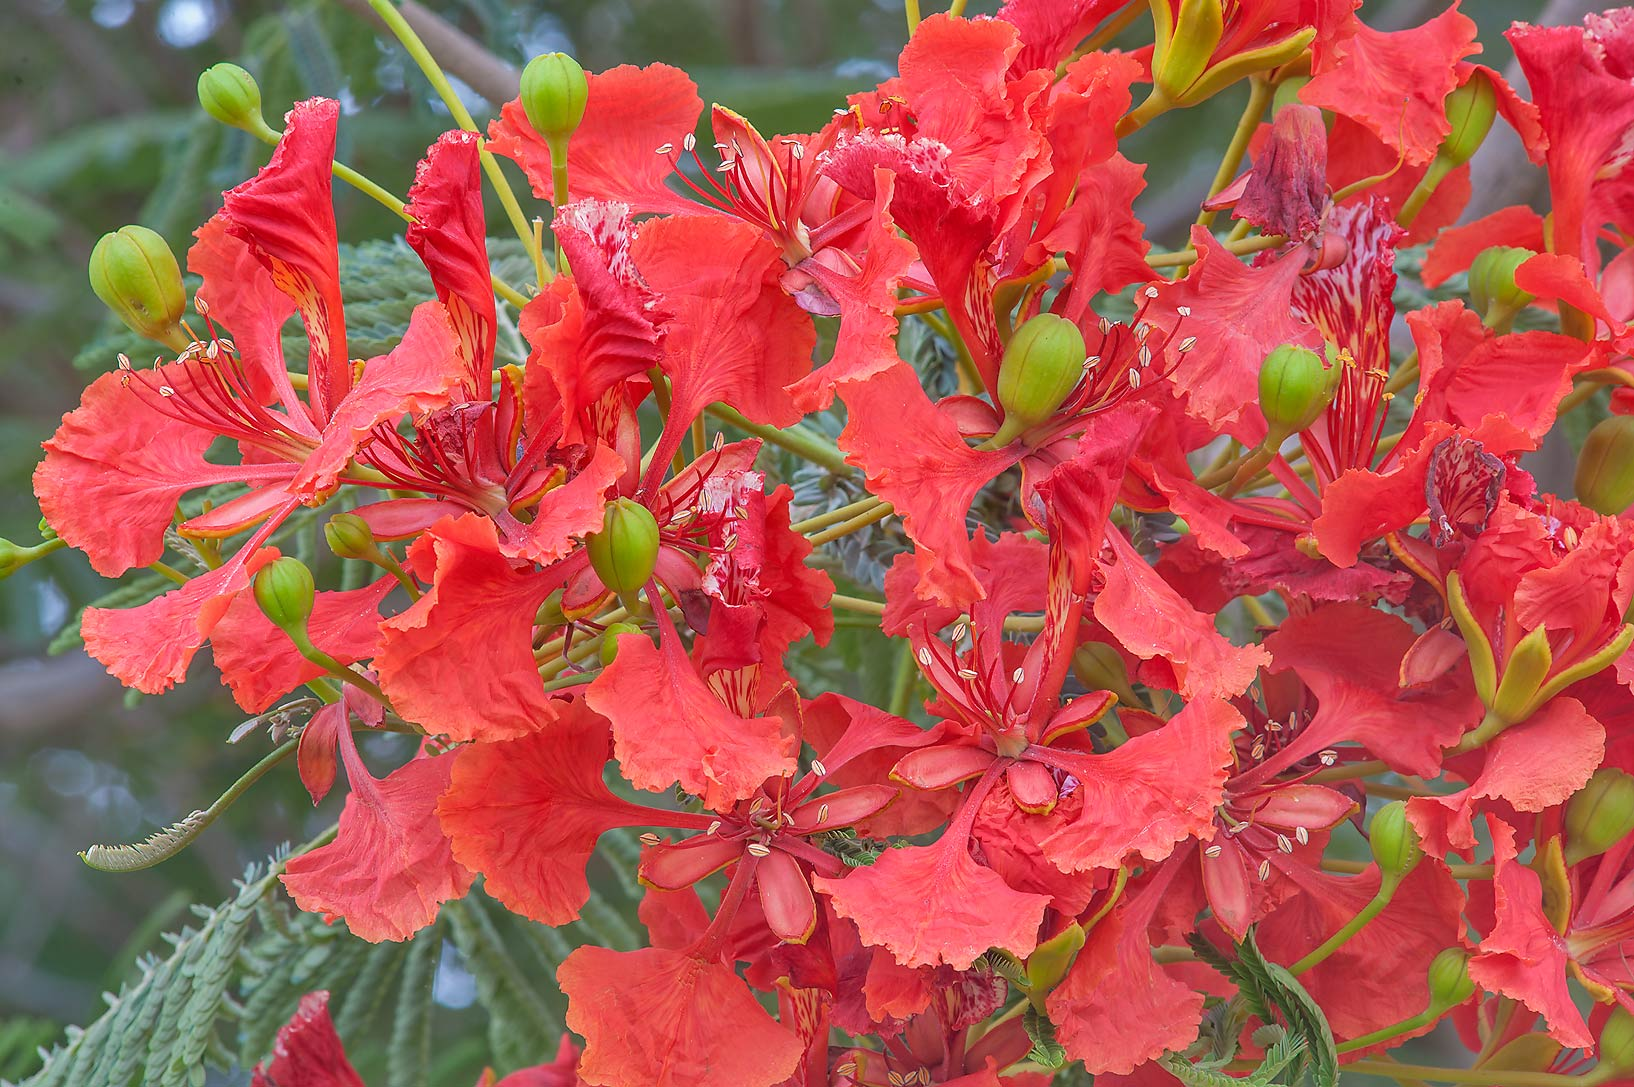 Royal Poinciana tree (Flamboyant, Delonix regia) with flowers in Aspire Park. Doha, Qatar